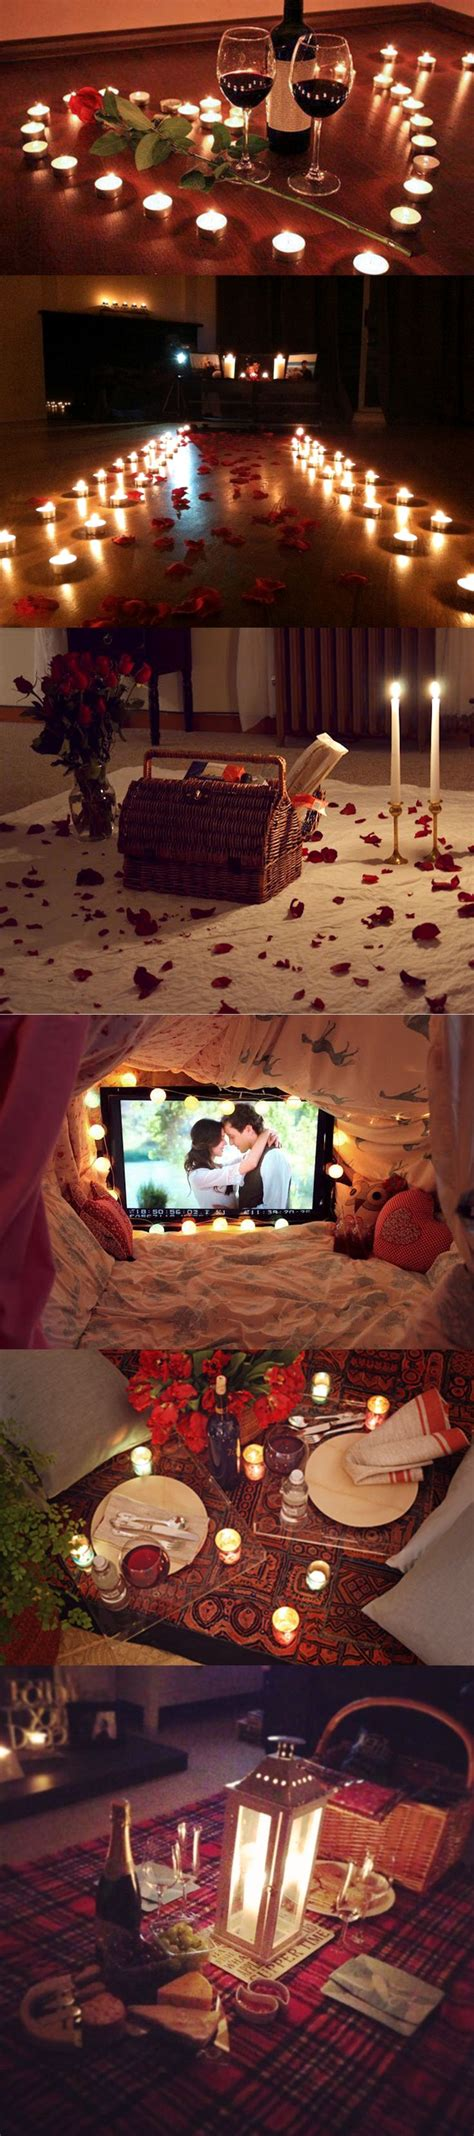 planning a romantic night at home 20 best ideas about romantic dates on pinterest